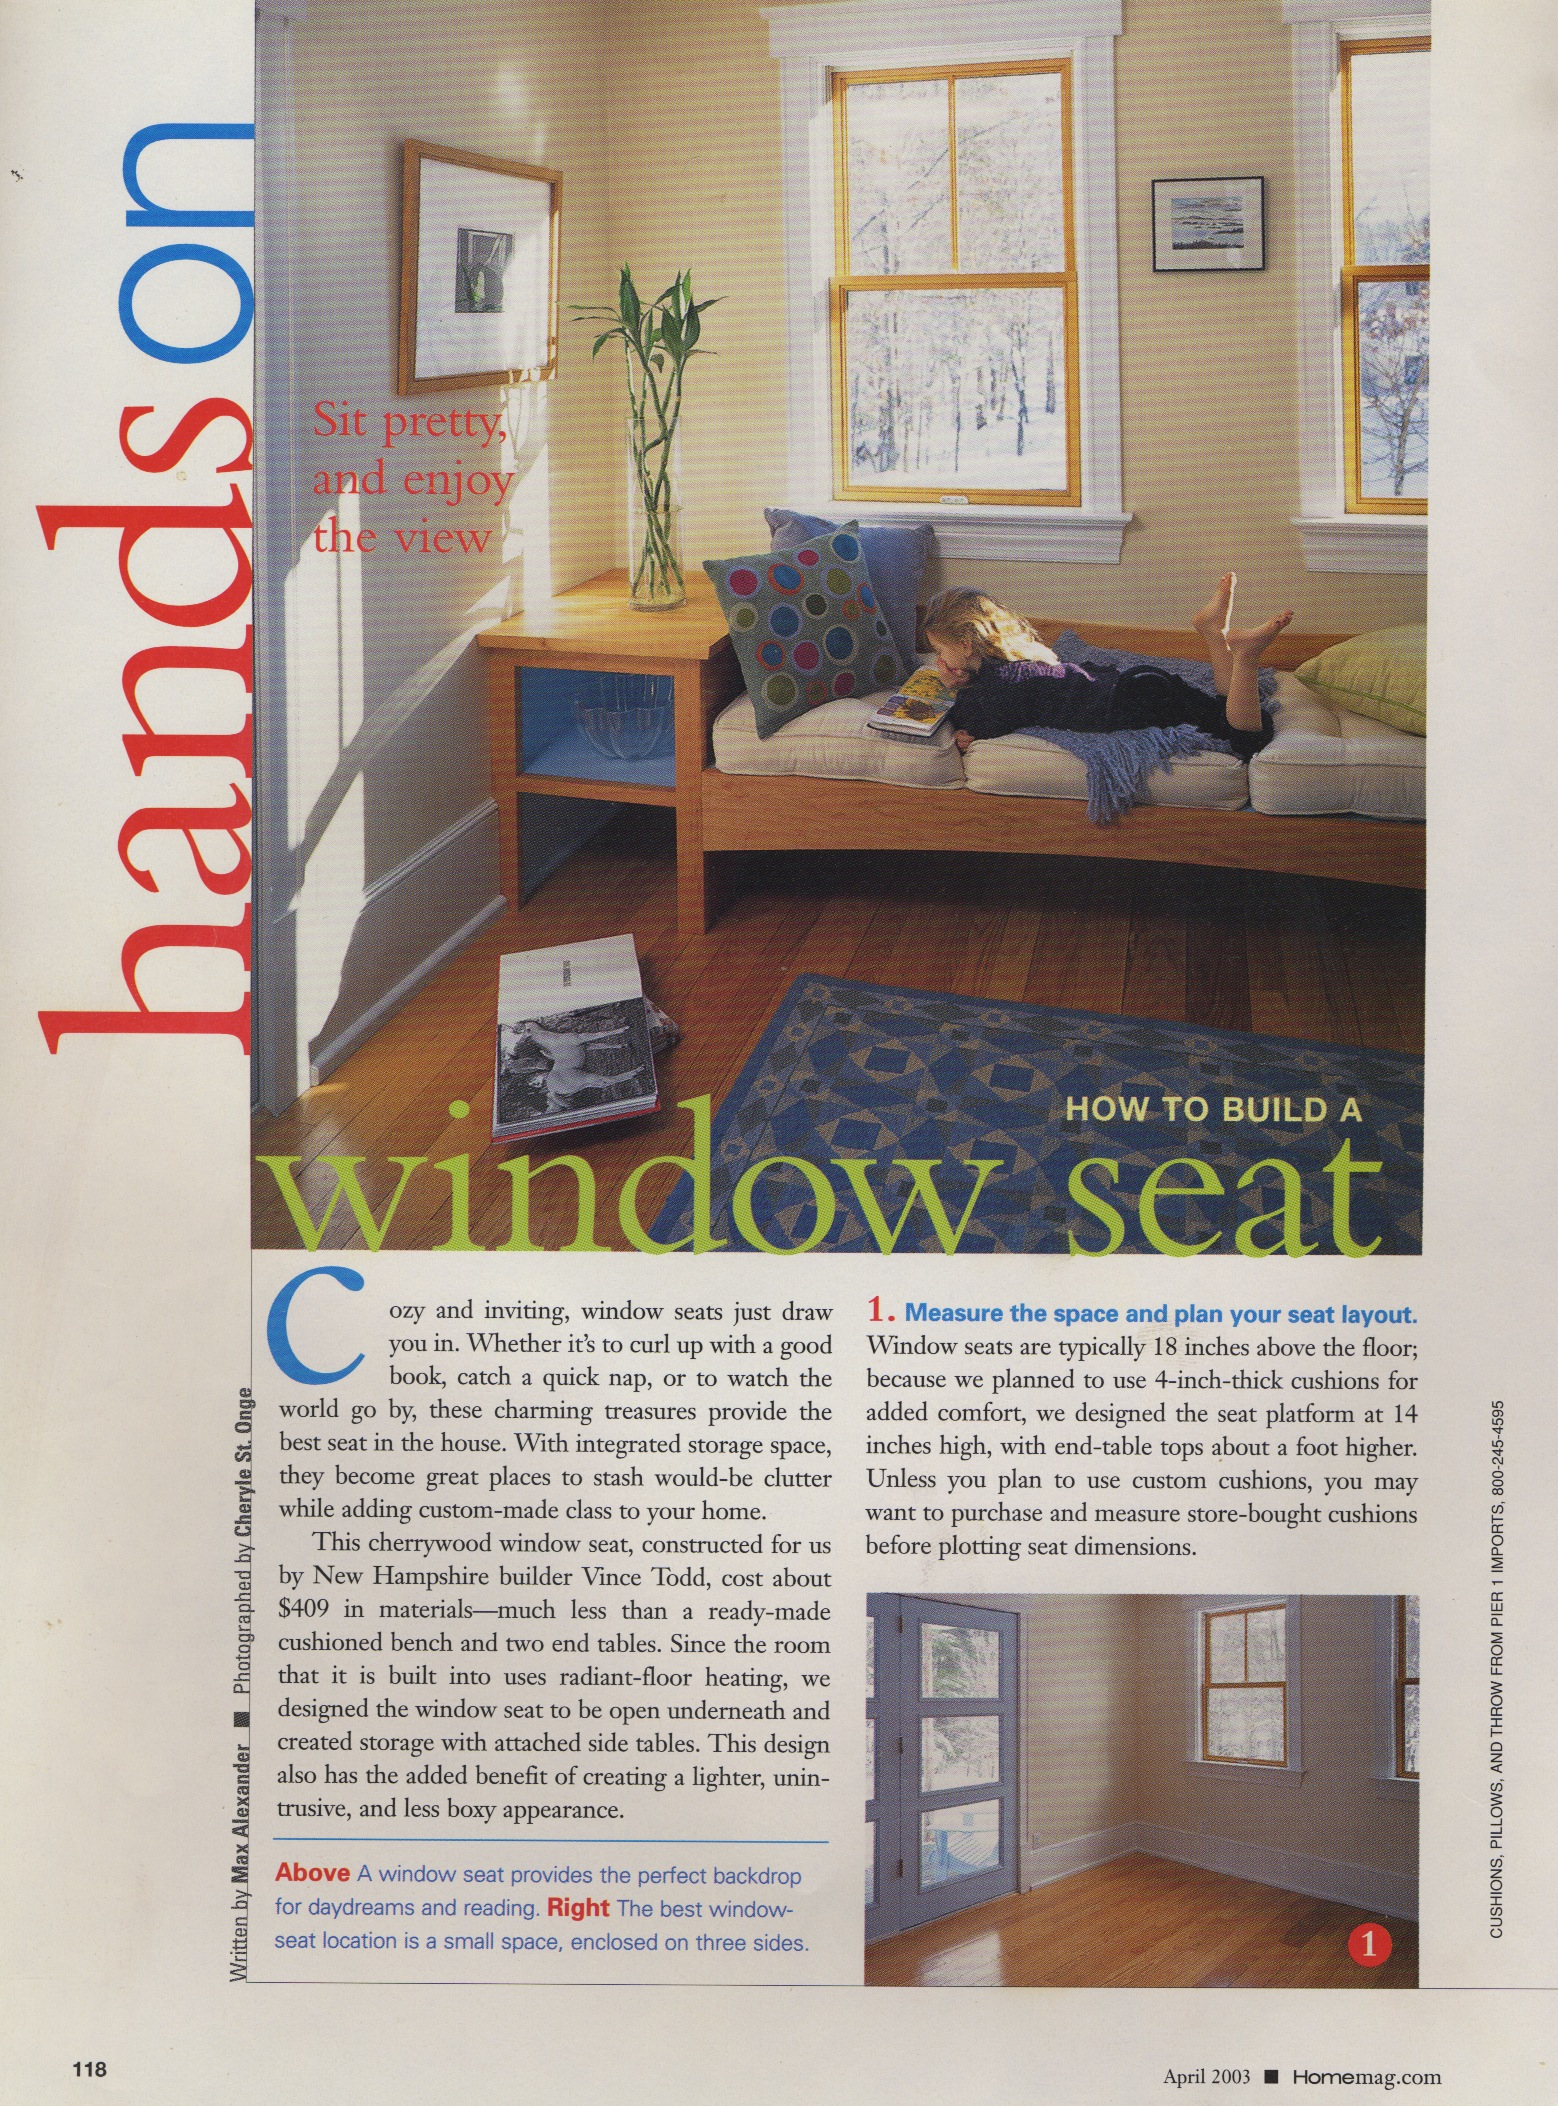 Home Magazine - Window Seat - Story.jpg